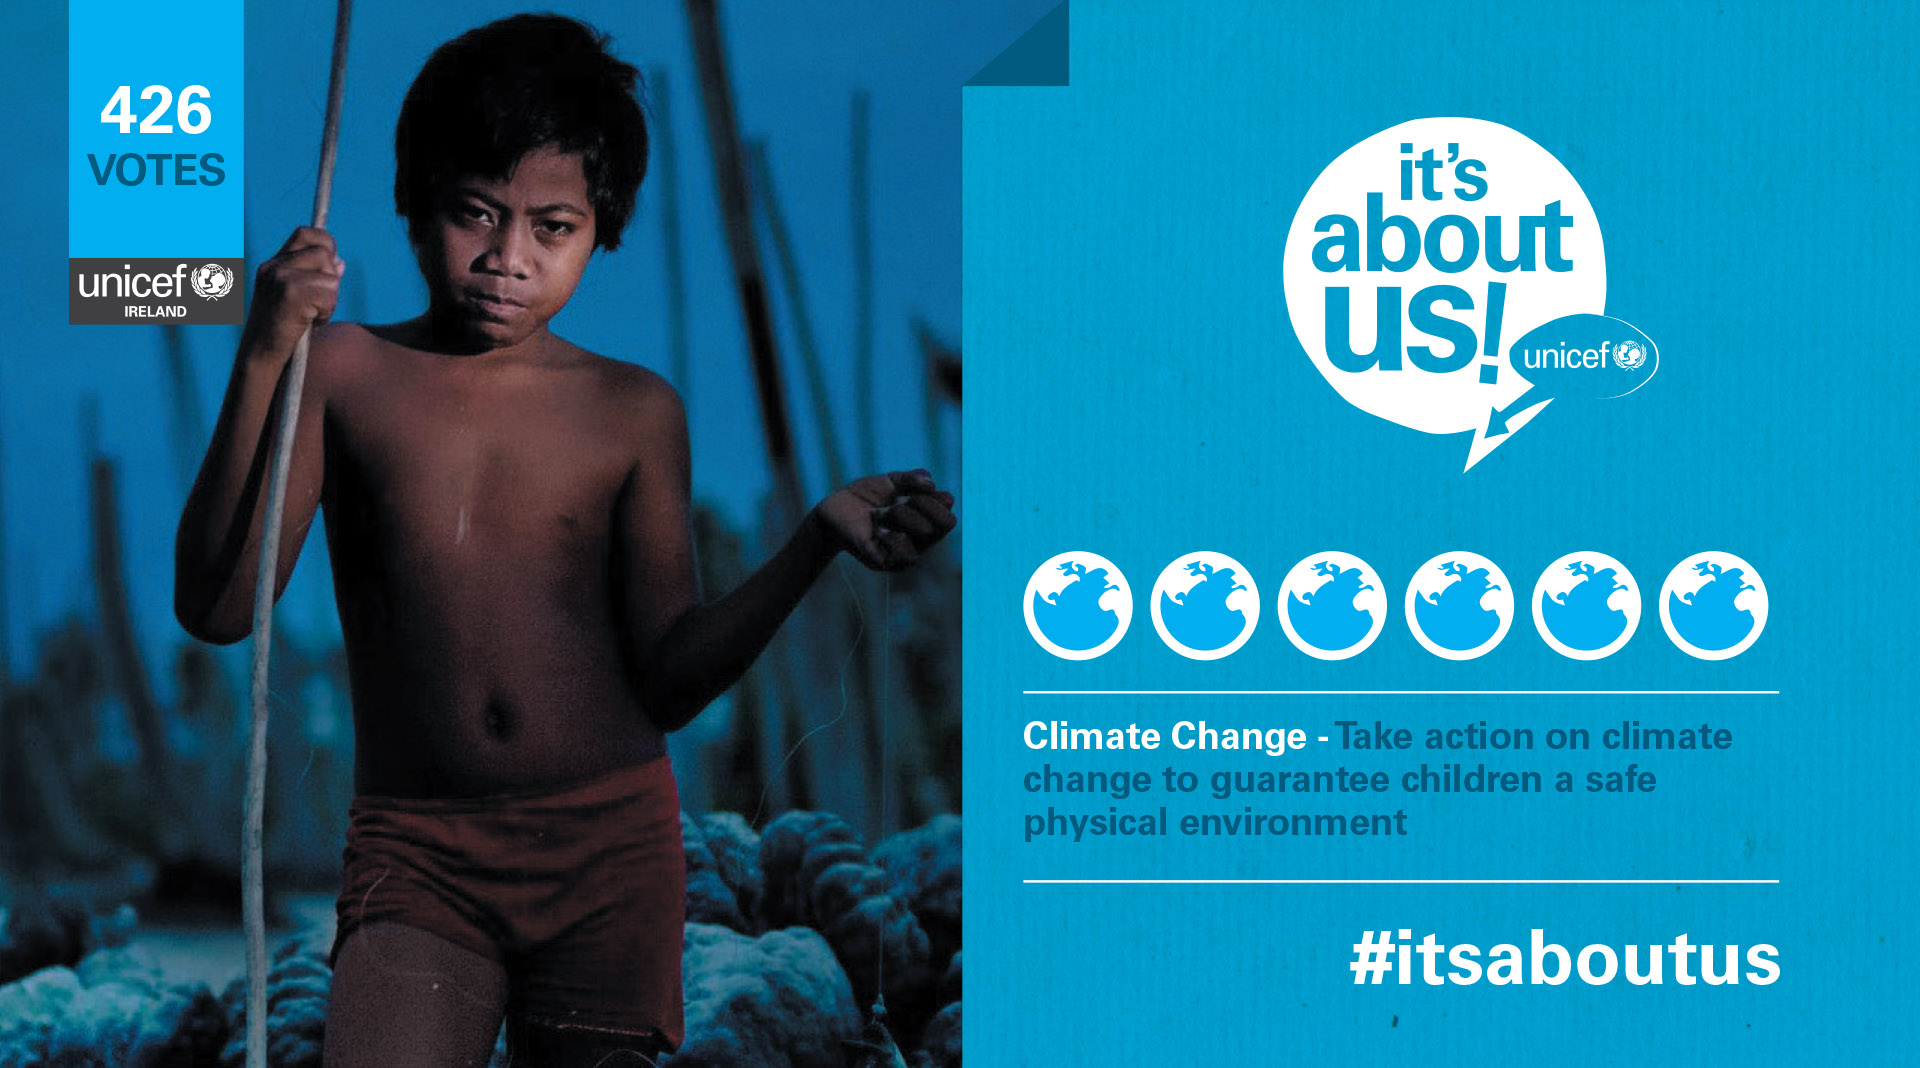 Unicef Its About Us Social Media Elements.